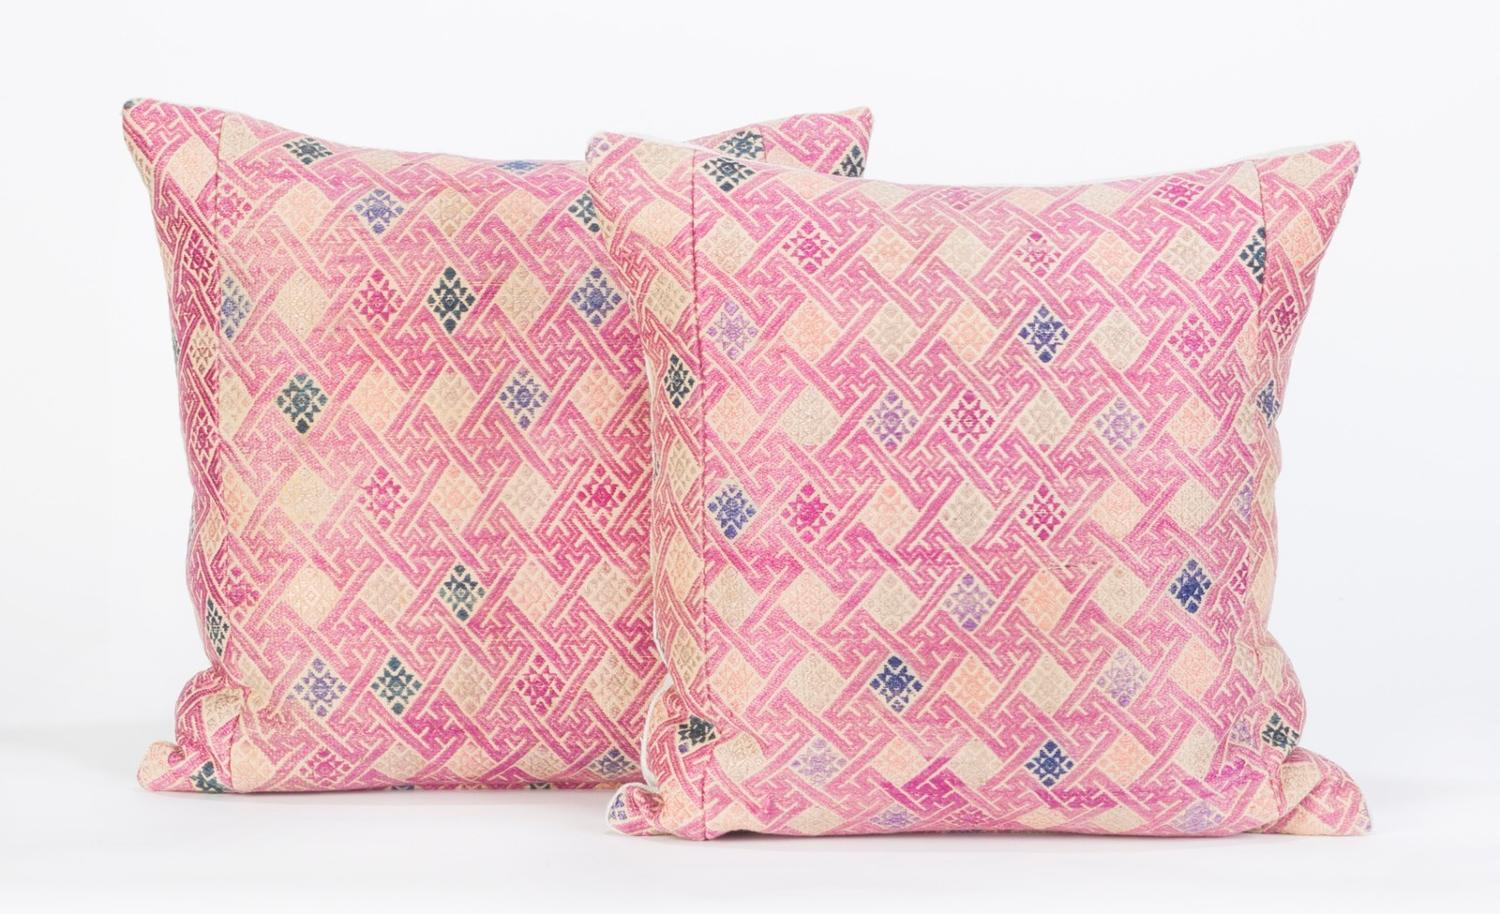 Square Wedding Blanket Cushions